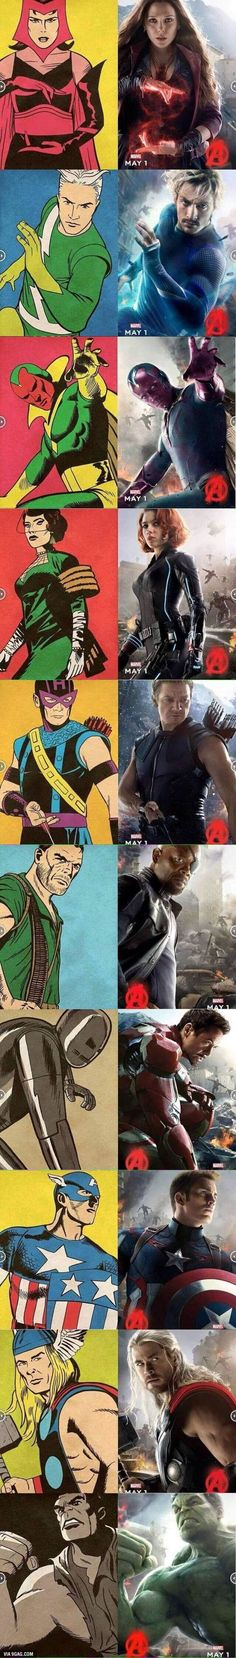 This image shows the Original Avengers compared to the movie posters, and the attention to detail is part of the reason why the avengers movie are so amazing. Marvel always stood by comic book accuracy Marvel Comics, Hero Marvel, Heros Comics, Bd Comics, Marvel Films, Marvel Characters, Marvel Avengers, Avengers Cartoon, Thor